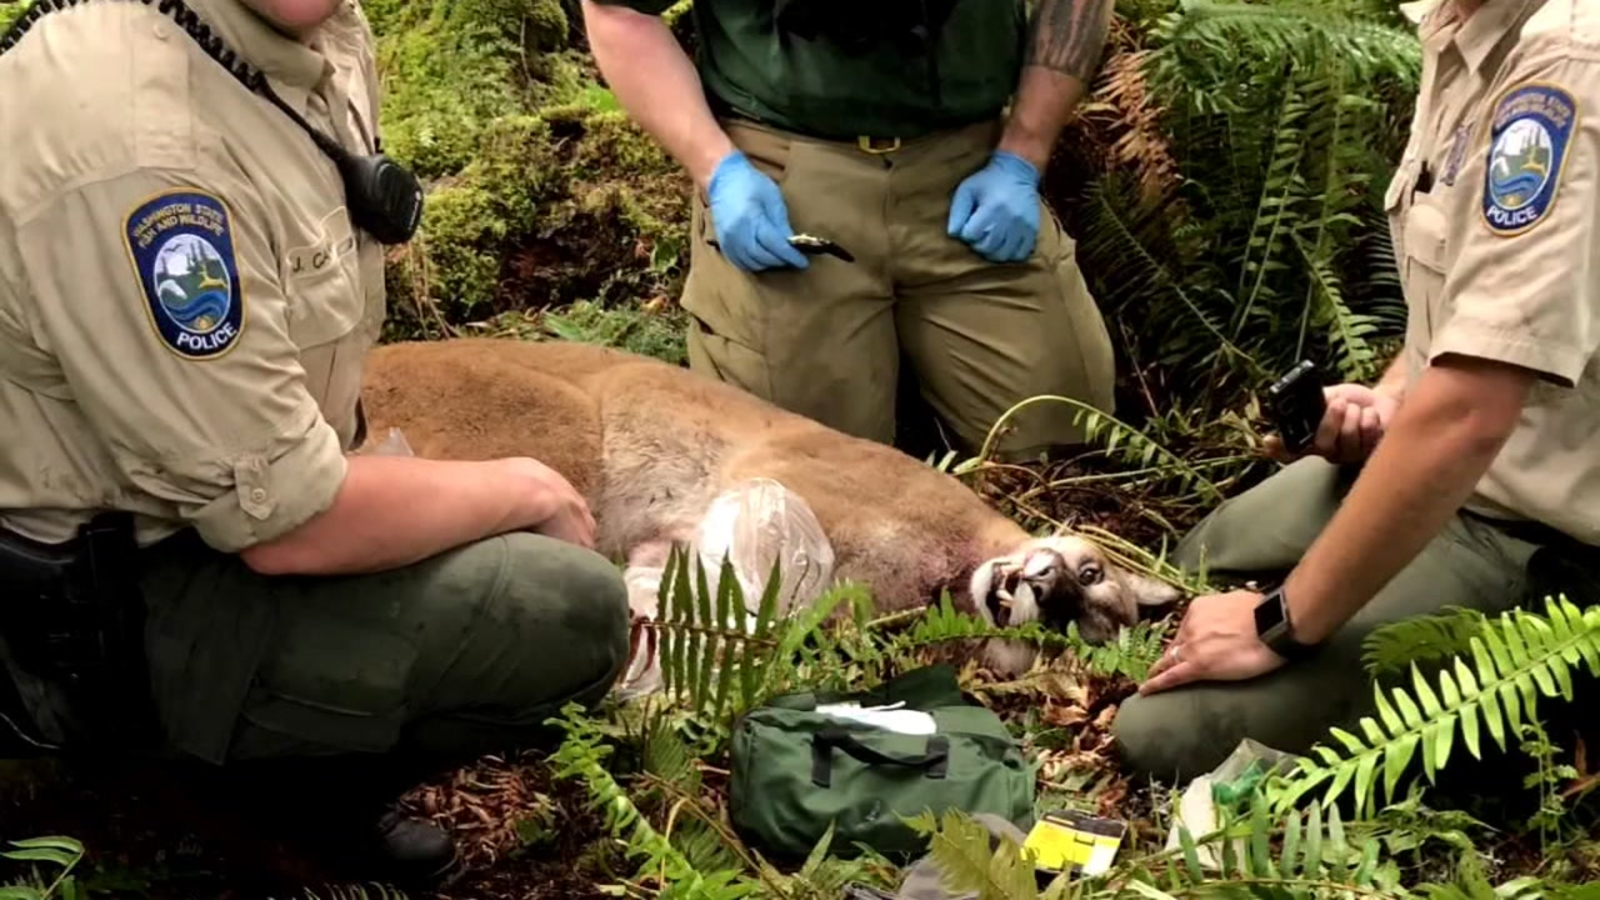 Mountain lion that killed cyclist was emaciated, officials say